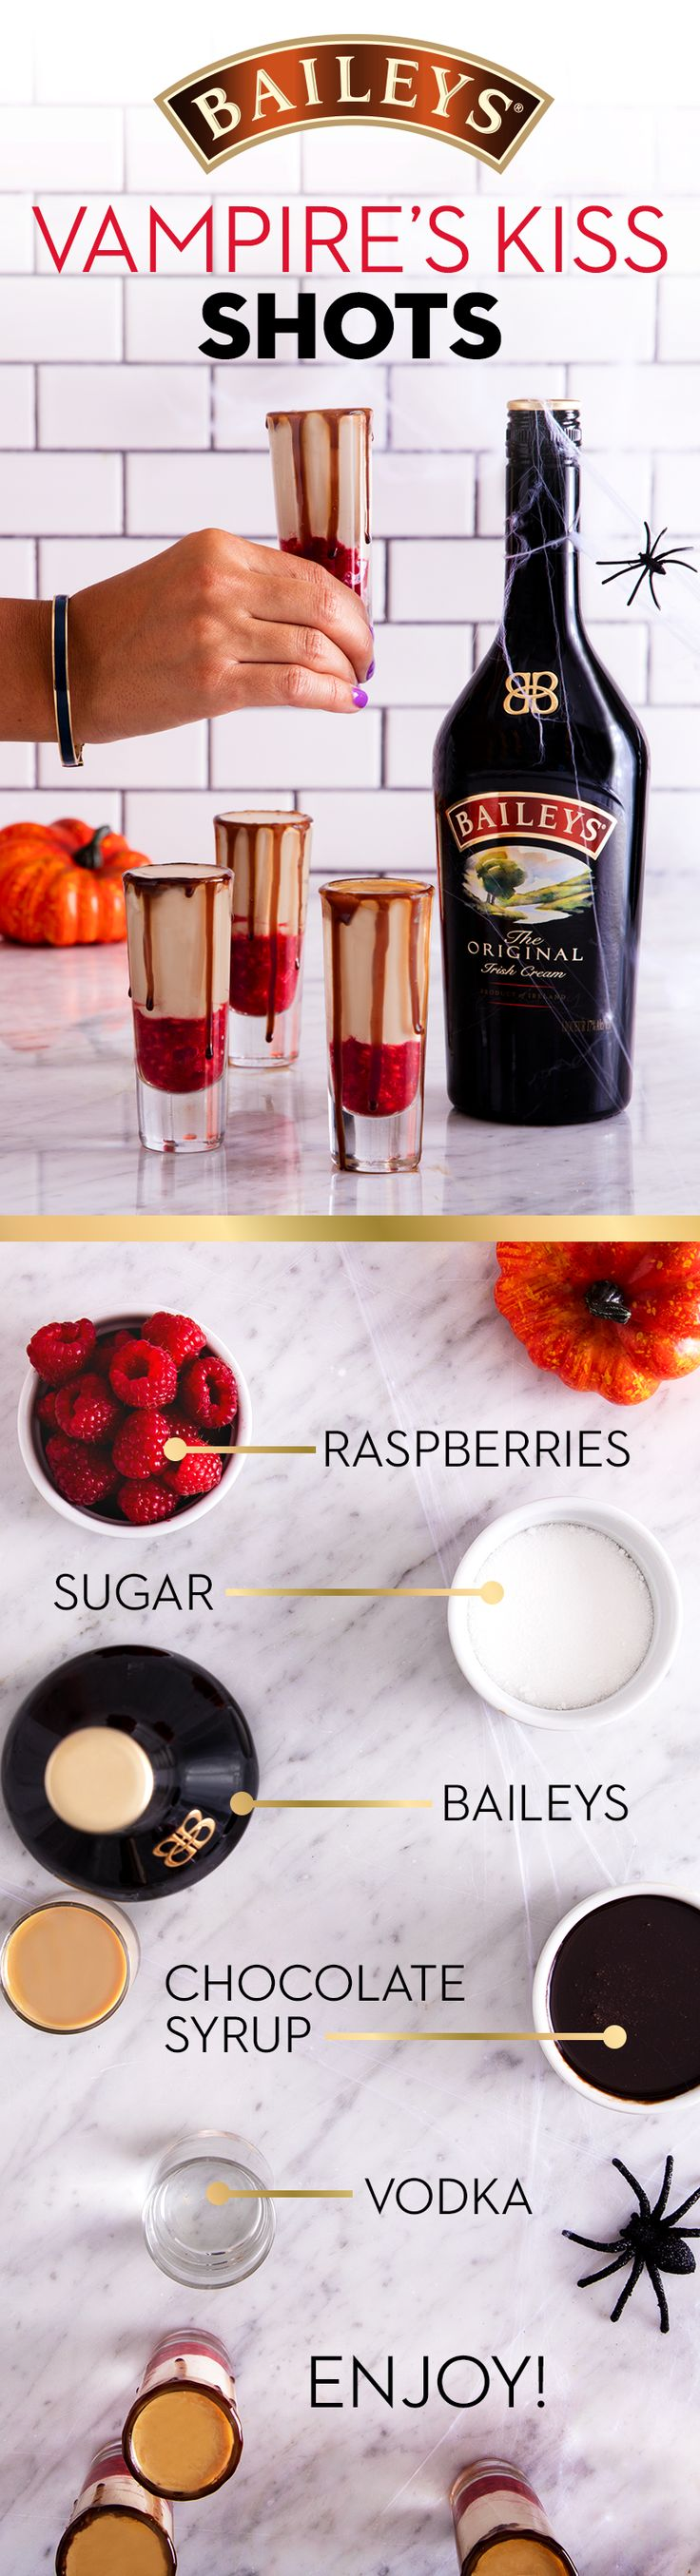 Halloween is approaching and we've got the perfect drink recipe for your party! Trick and treat your friends with these Baileys vampire themed shots. To start, purée 1 cup raspberries and 2 tablespoons sugar in a blender until smooth. In a shaker with ice, mix 1 oz Baileys and .5 oz vodka for each shot. To assemble, just pour 1-2 teaspoons of raspberry purée into each shot glass, fill the remainder with the Baileys & vodka mix and garnish the edge with chocolate syrup. Cheers to a fun…